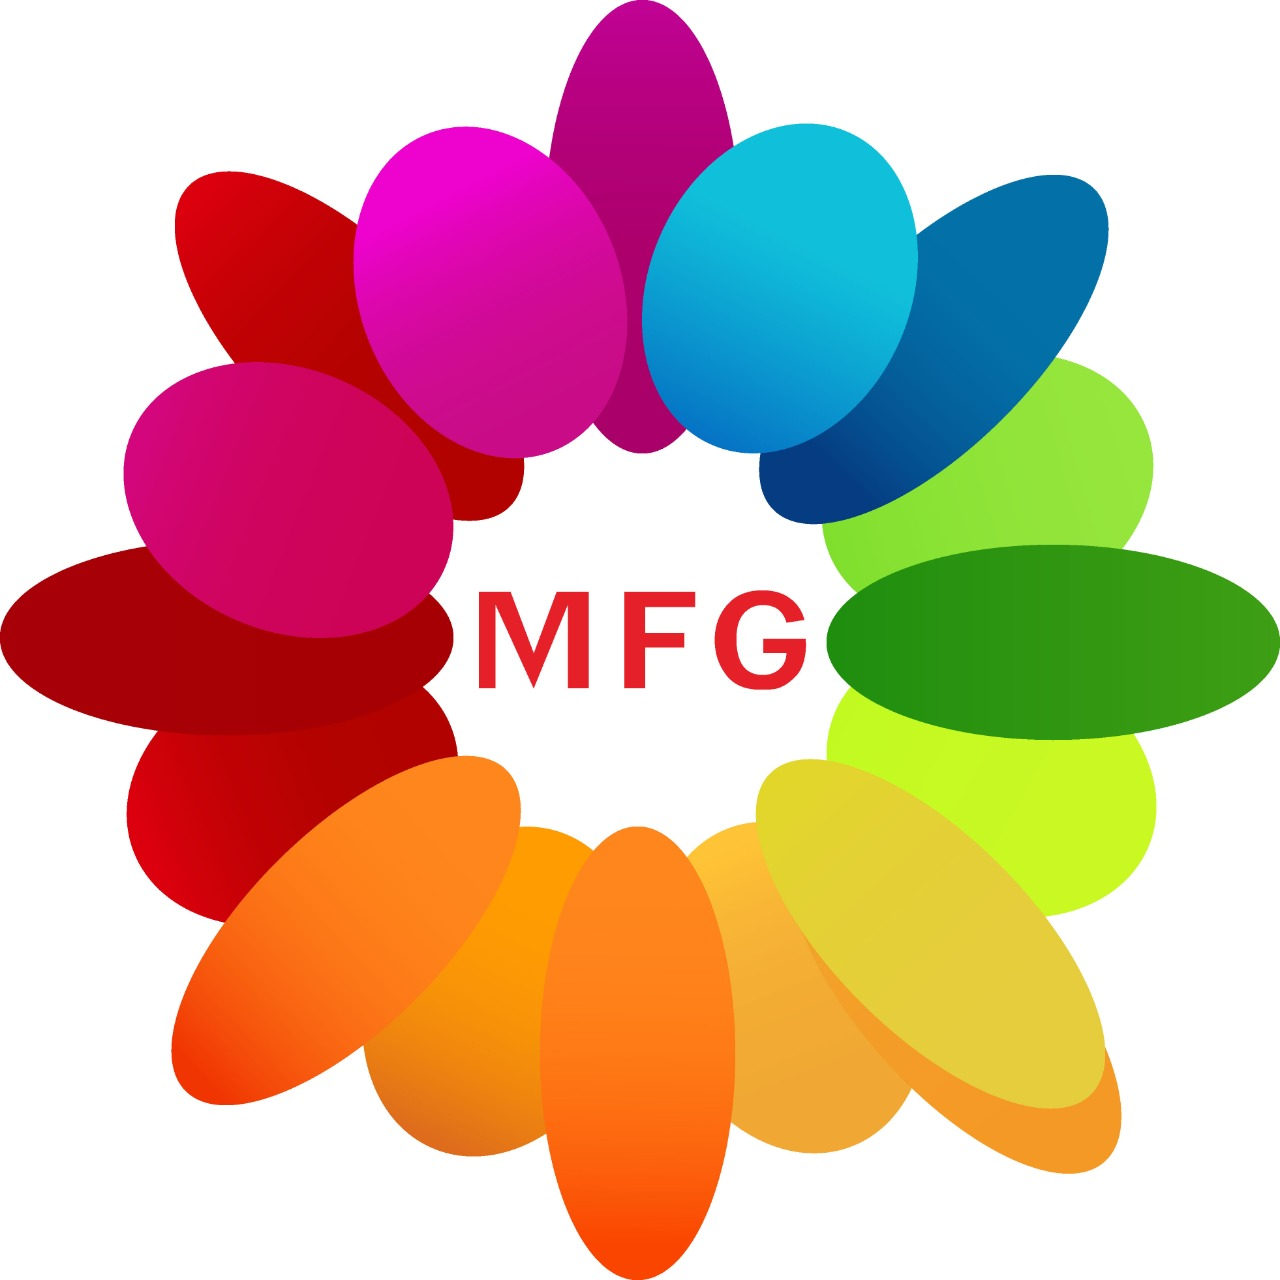 White Flowers arrangement of wreath with white roses and white lilies